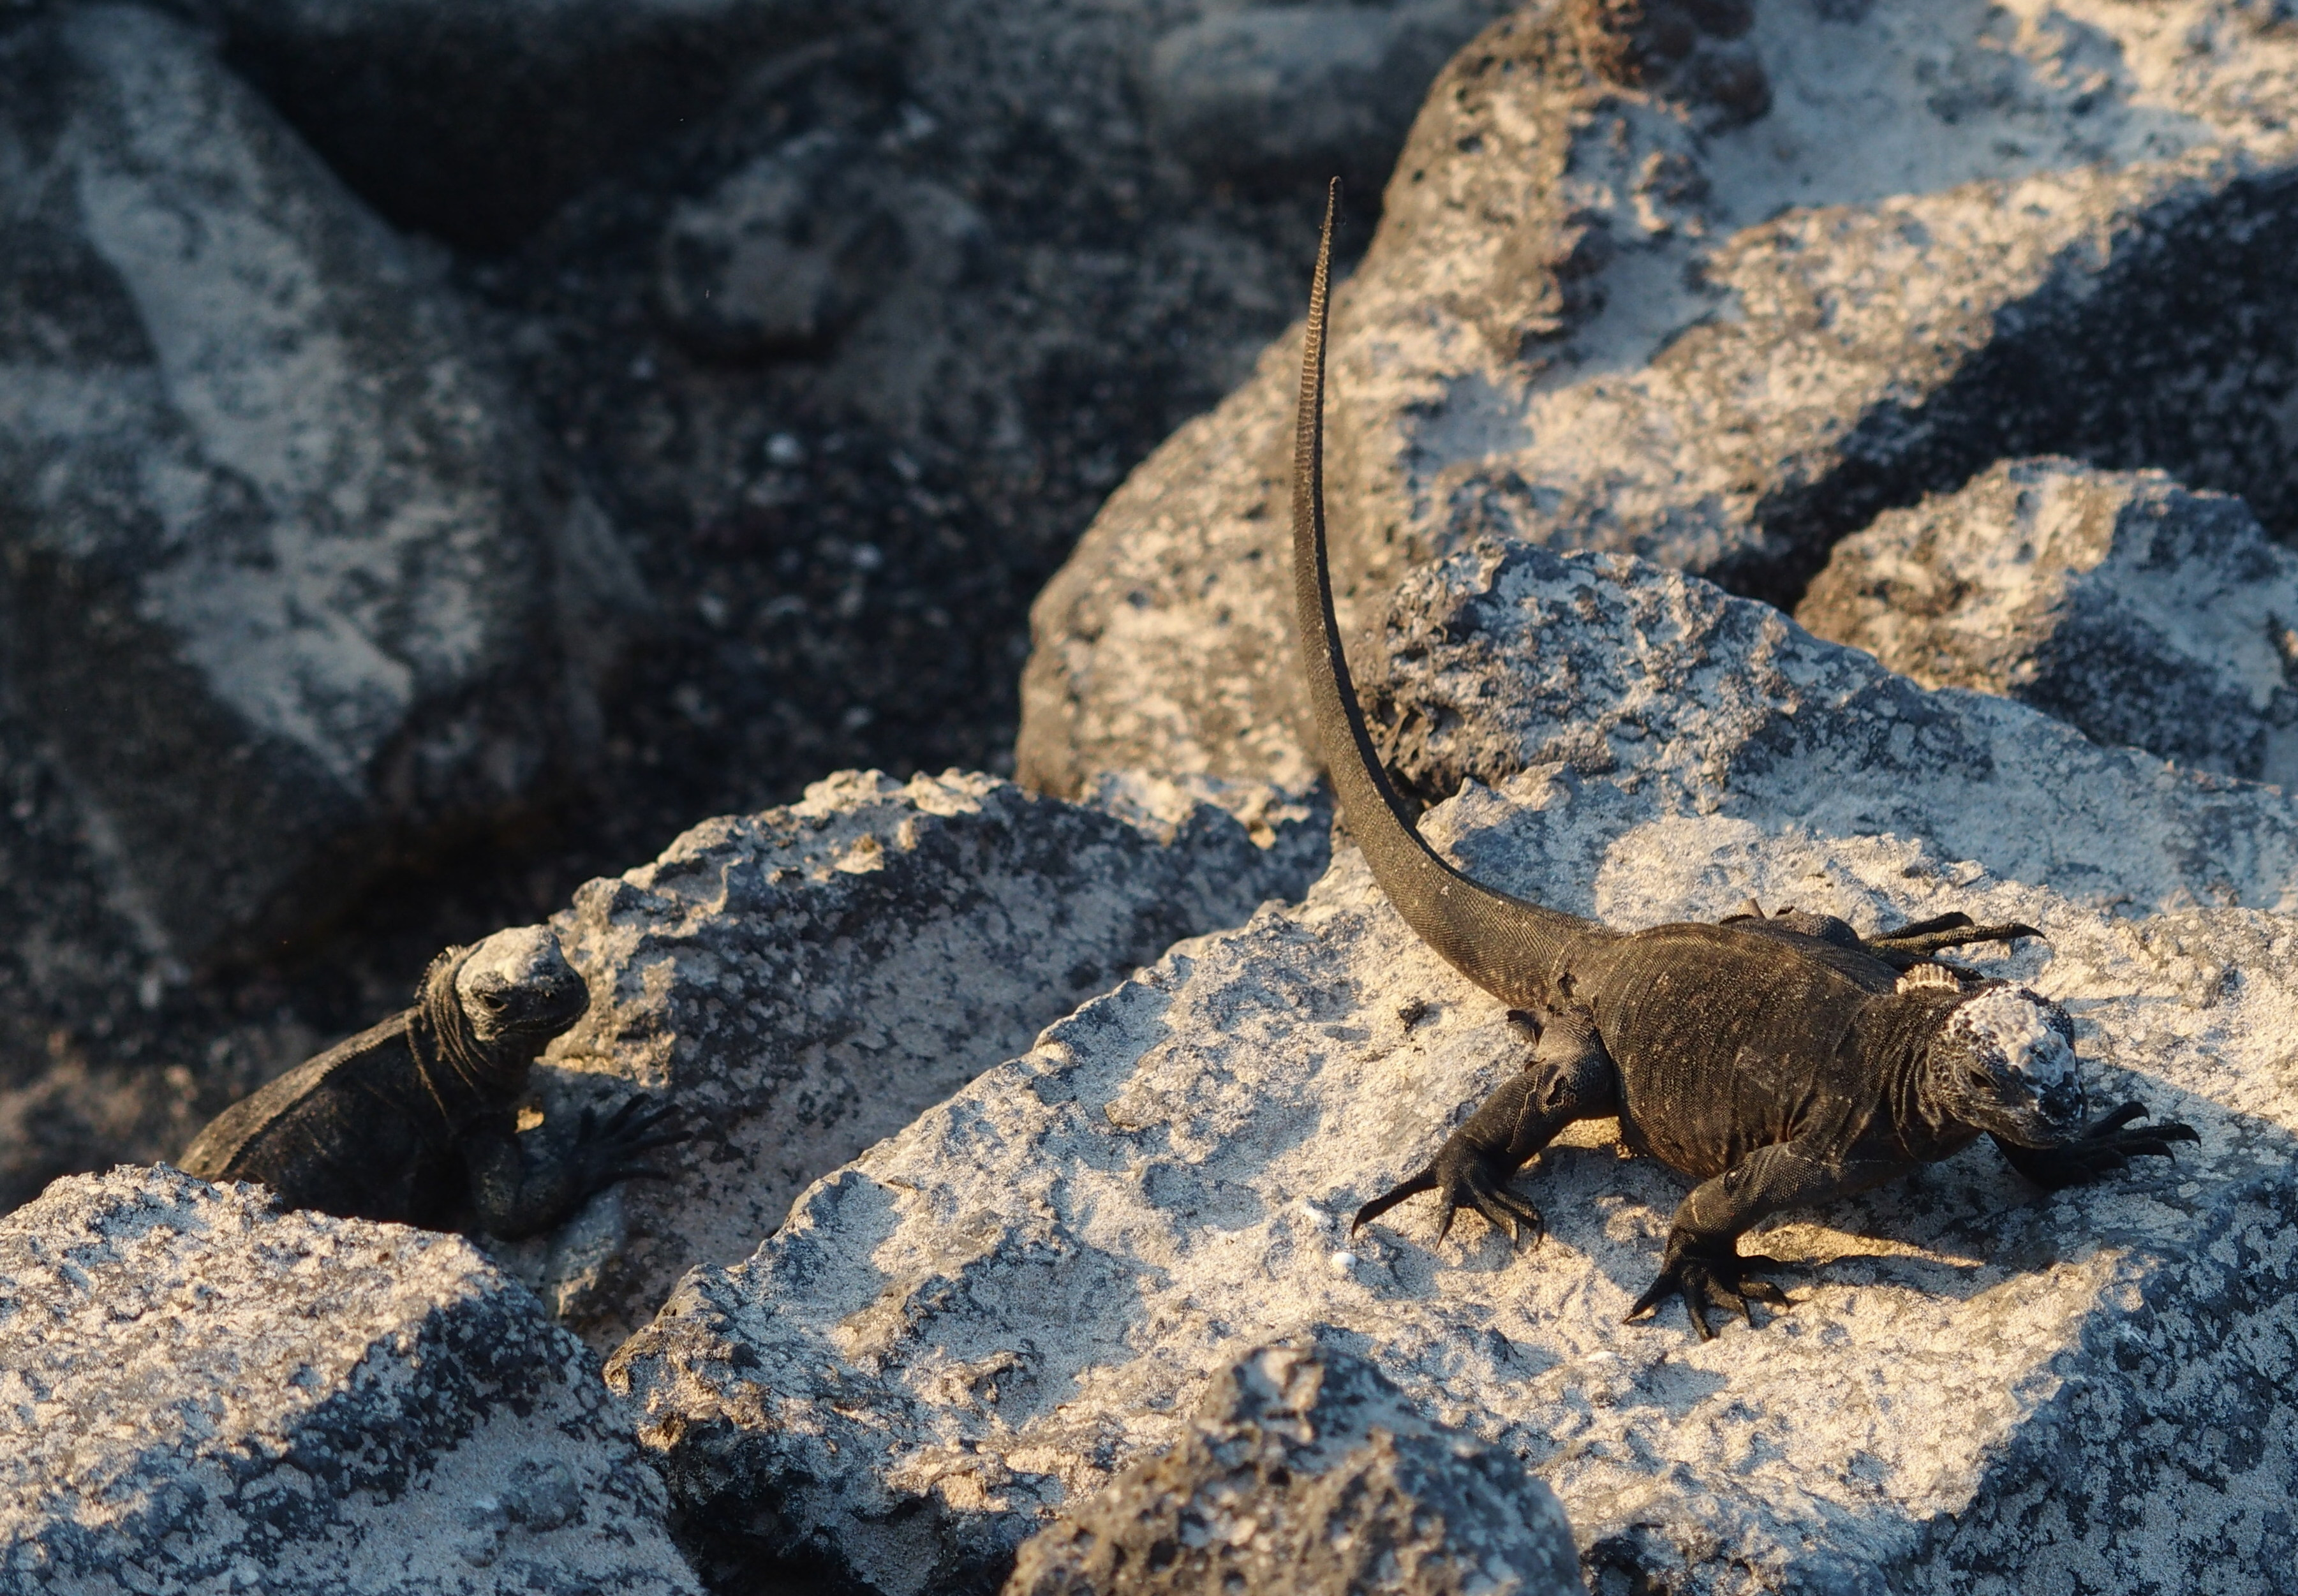 Iguanes sur rochers - Galapagos